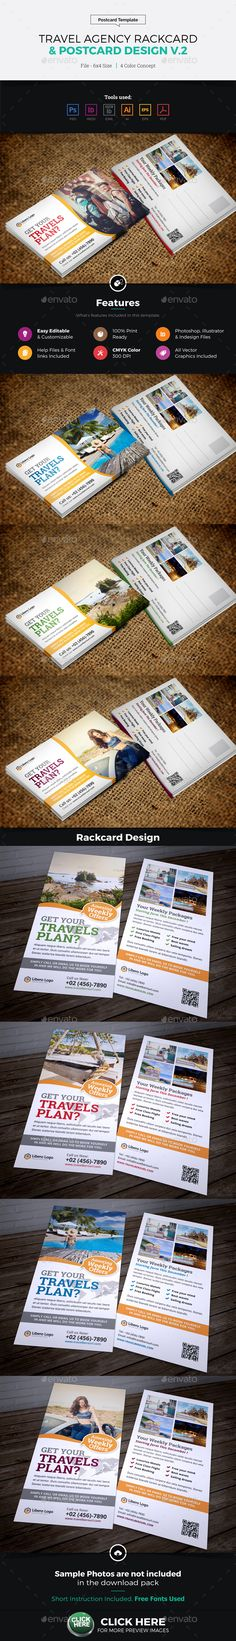 Travel Postcard Rackcard DL Flyer Design Template PSD, Vector EPS, InDesign INDD, AI Illustrator